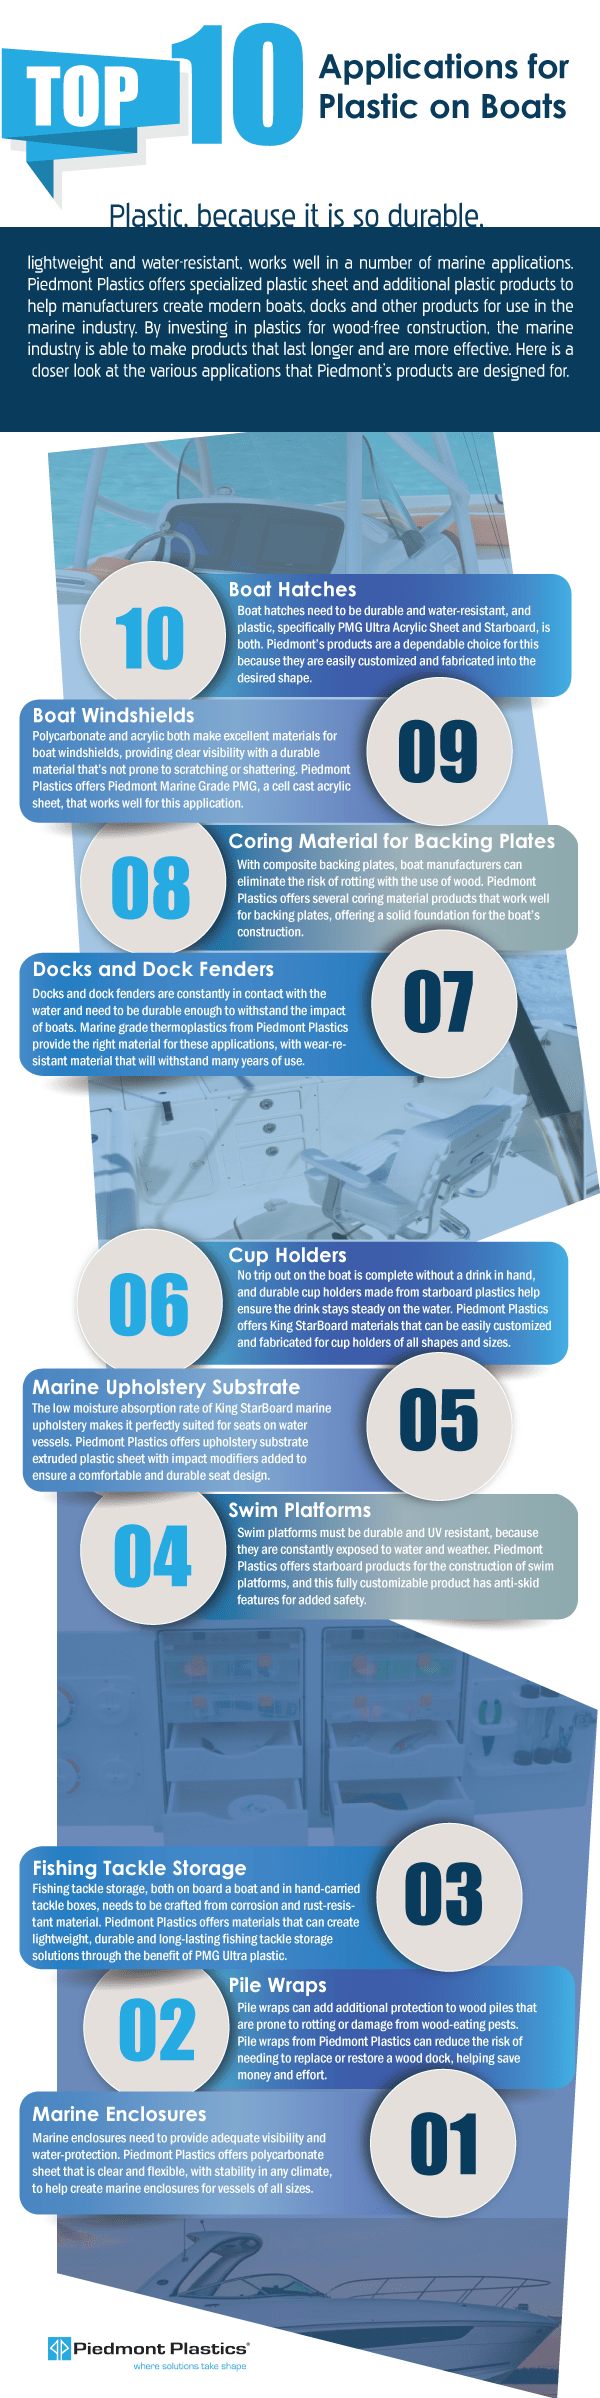 Plastic Sheet on Boats Infographic